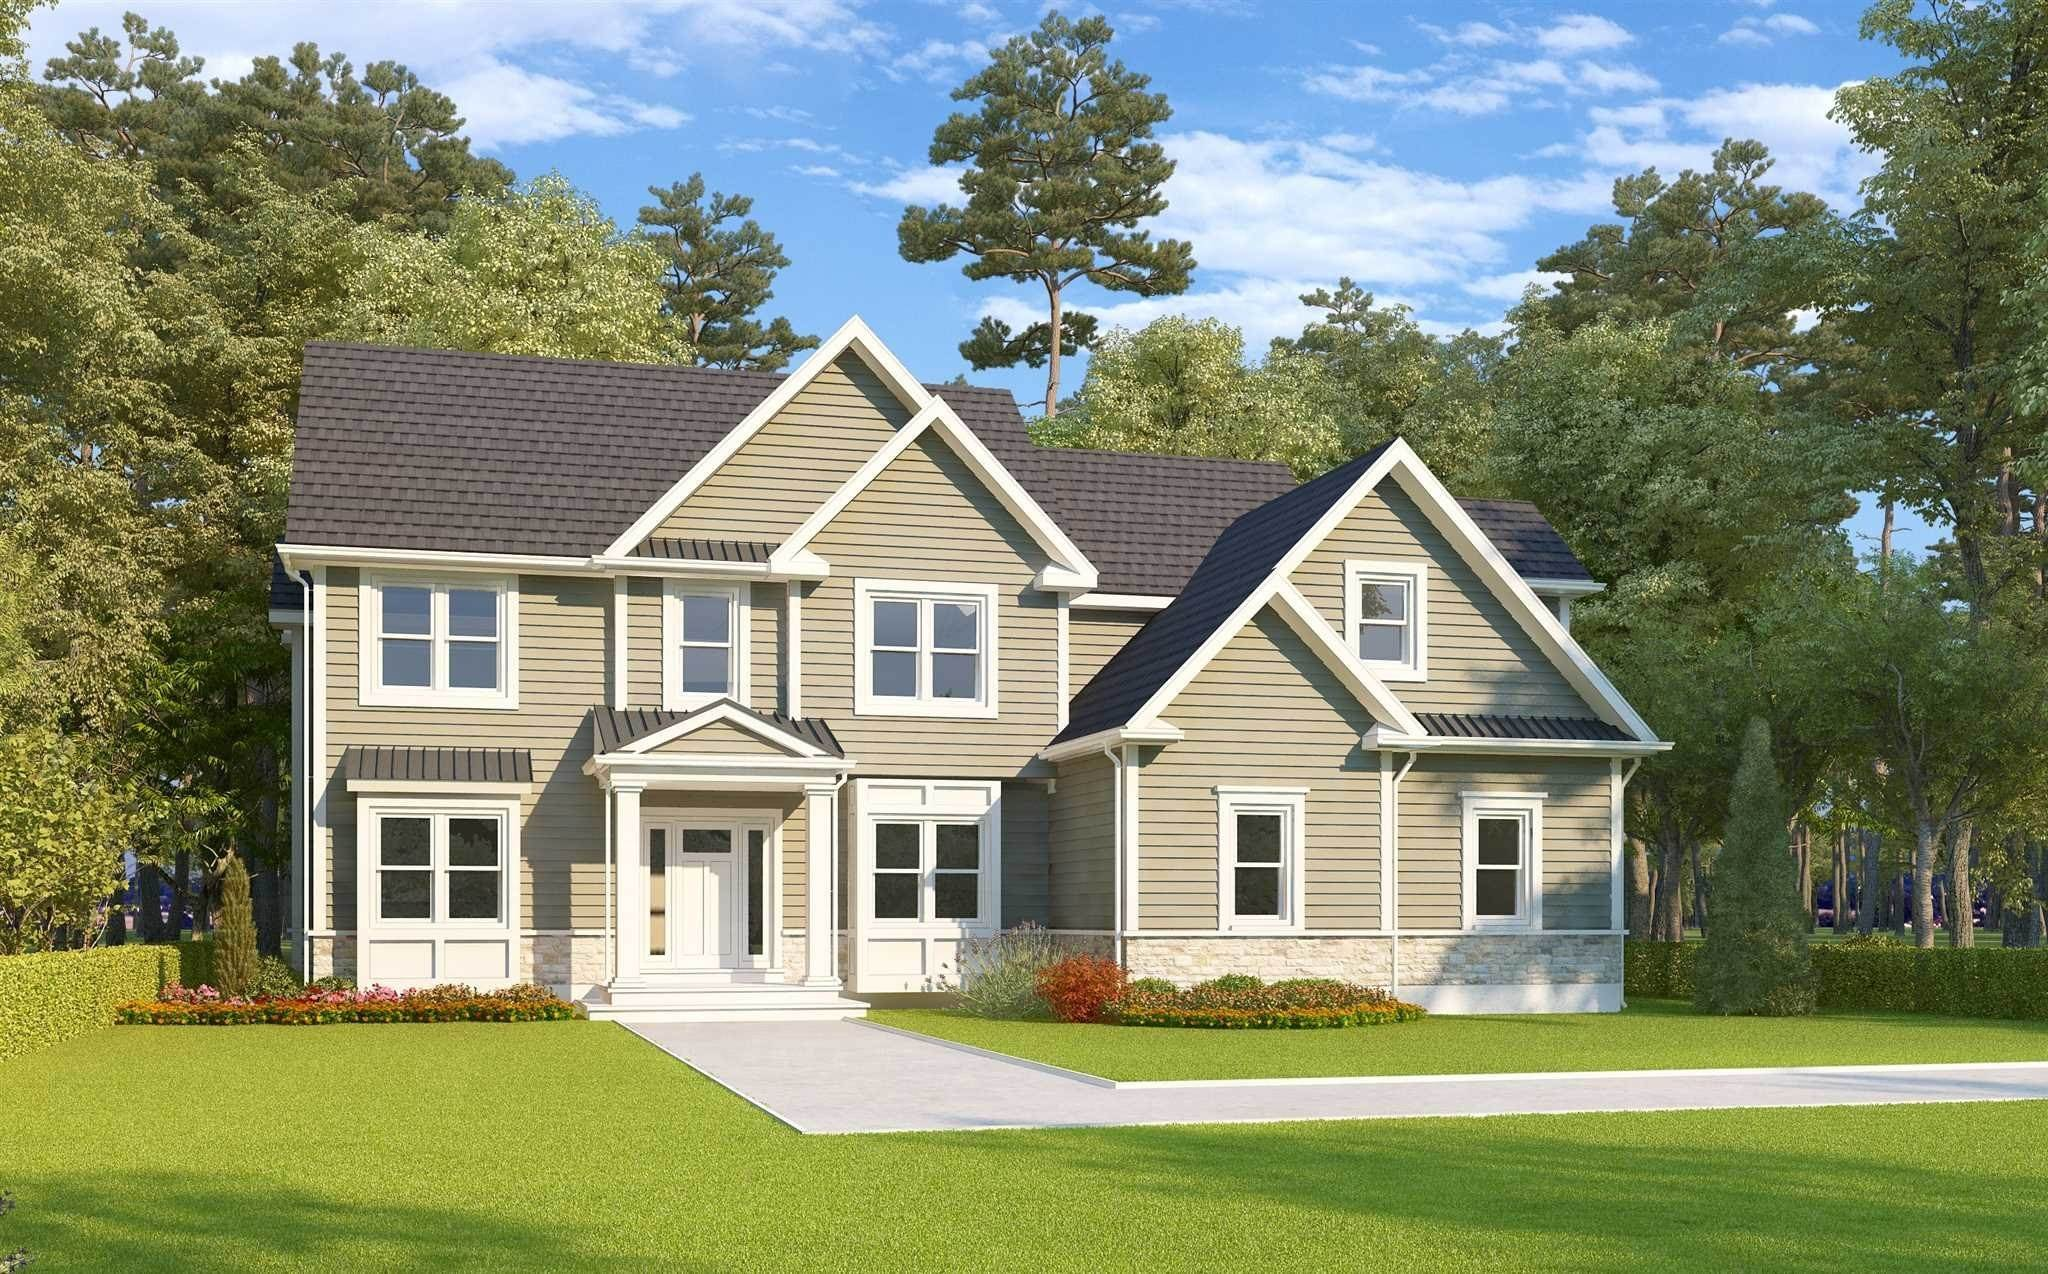 Single Family Homes for Sale at STONECREST LOT#19 Court Beekman, New York 12533 United States